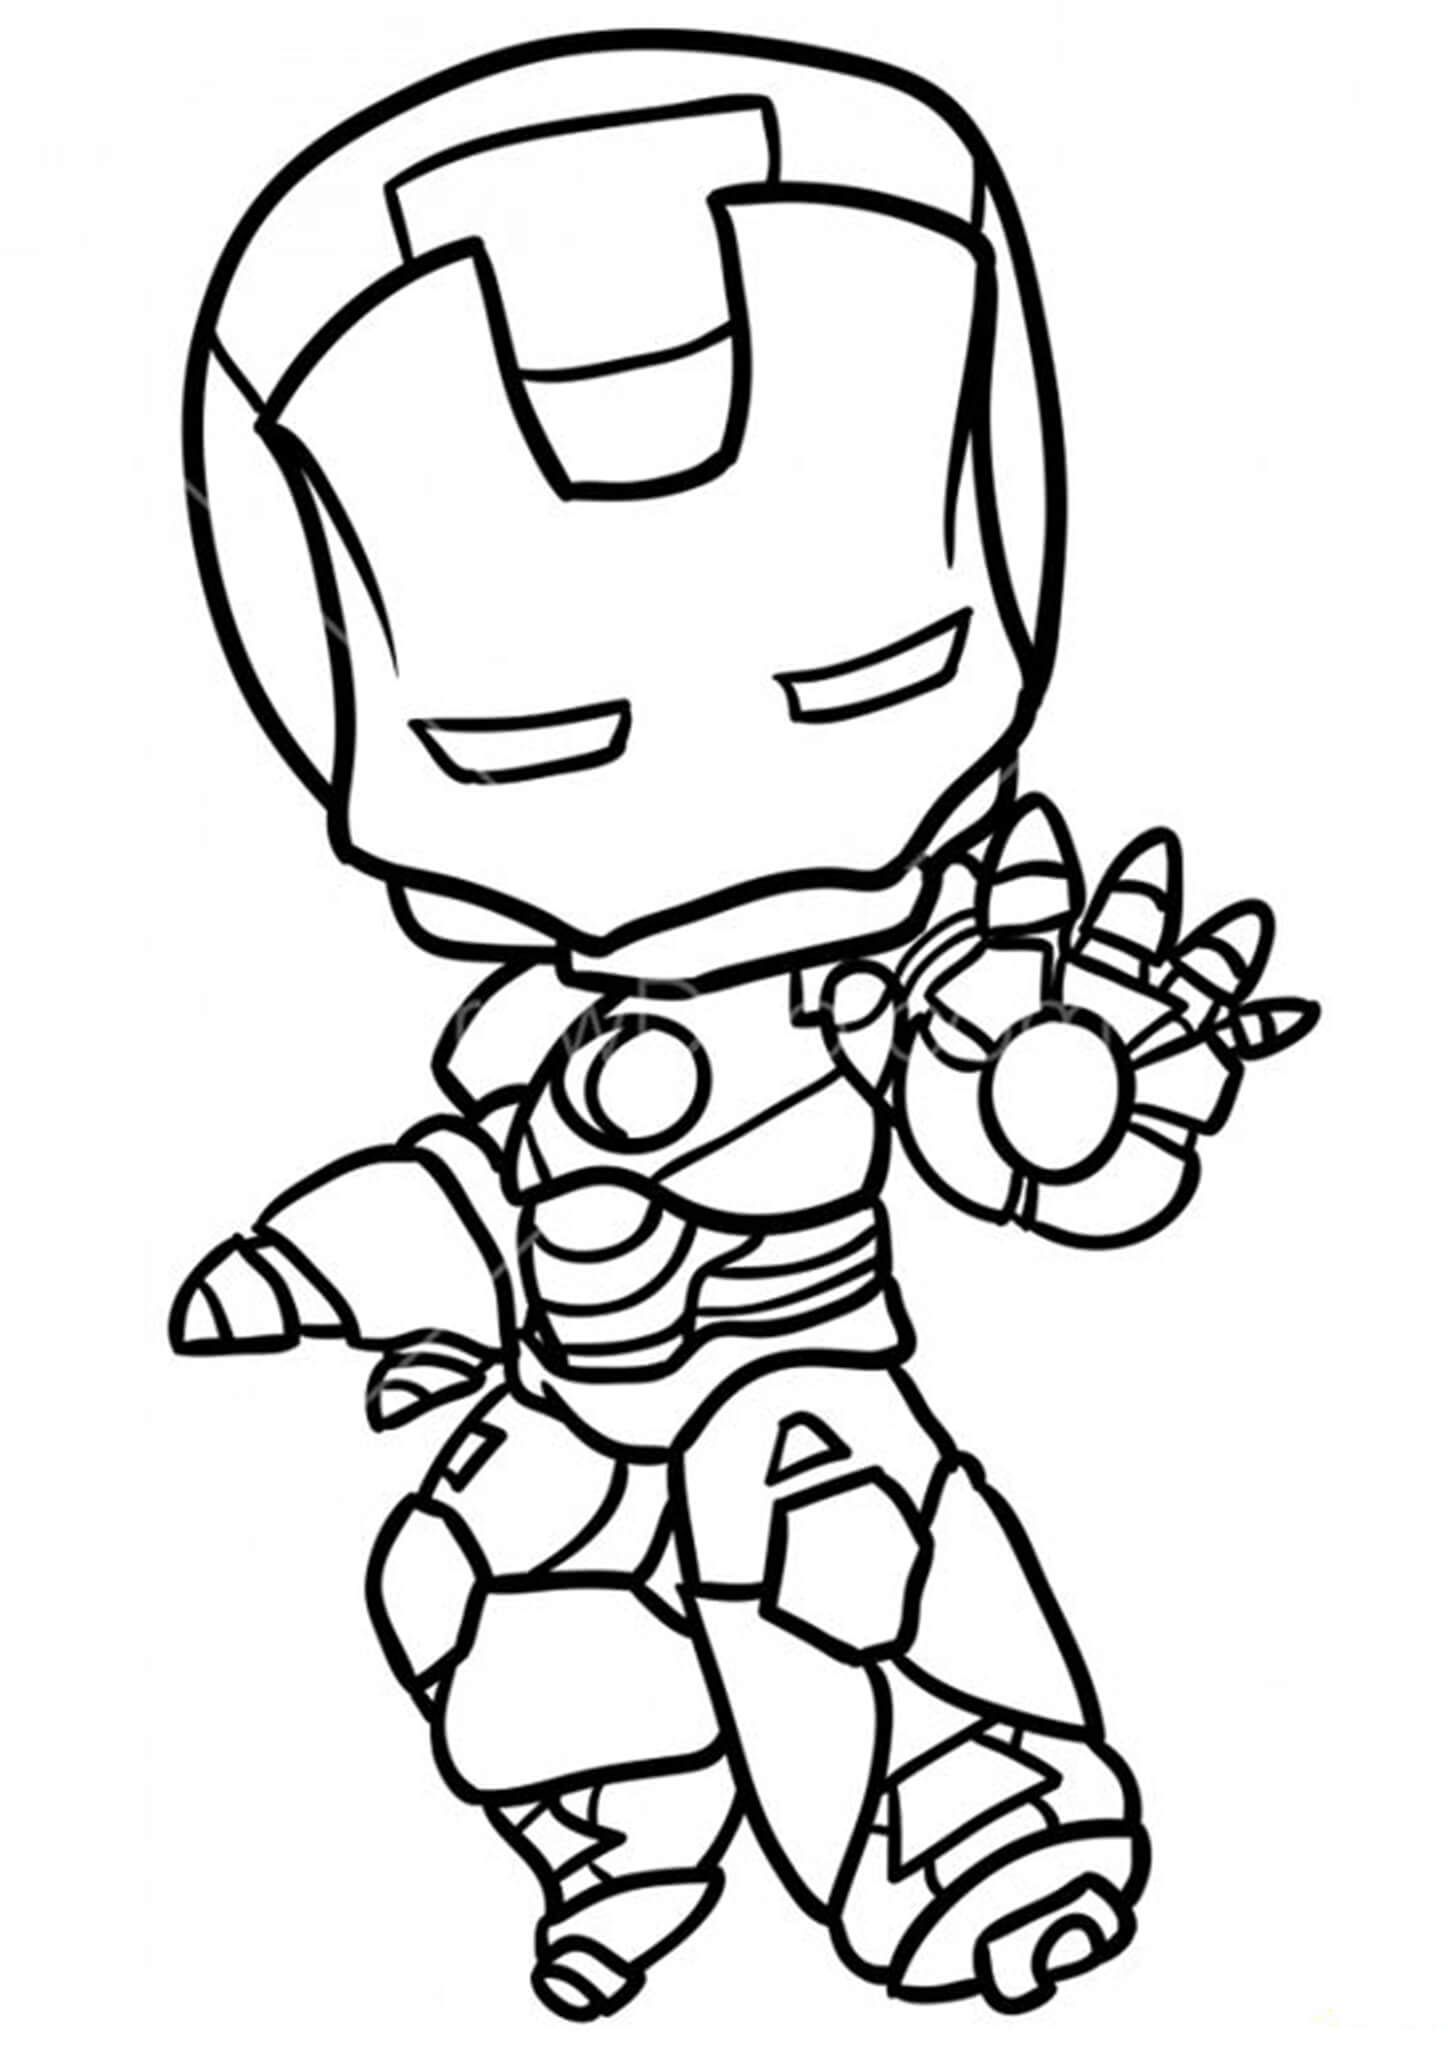 Free Easy To Print Iron Man Coloring Pages Iron Man Drawing Avengers Coloring Cartoon Coloring Pages